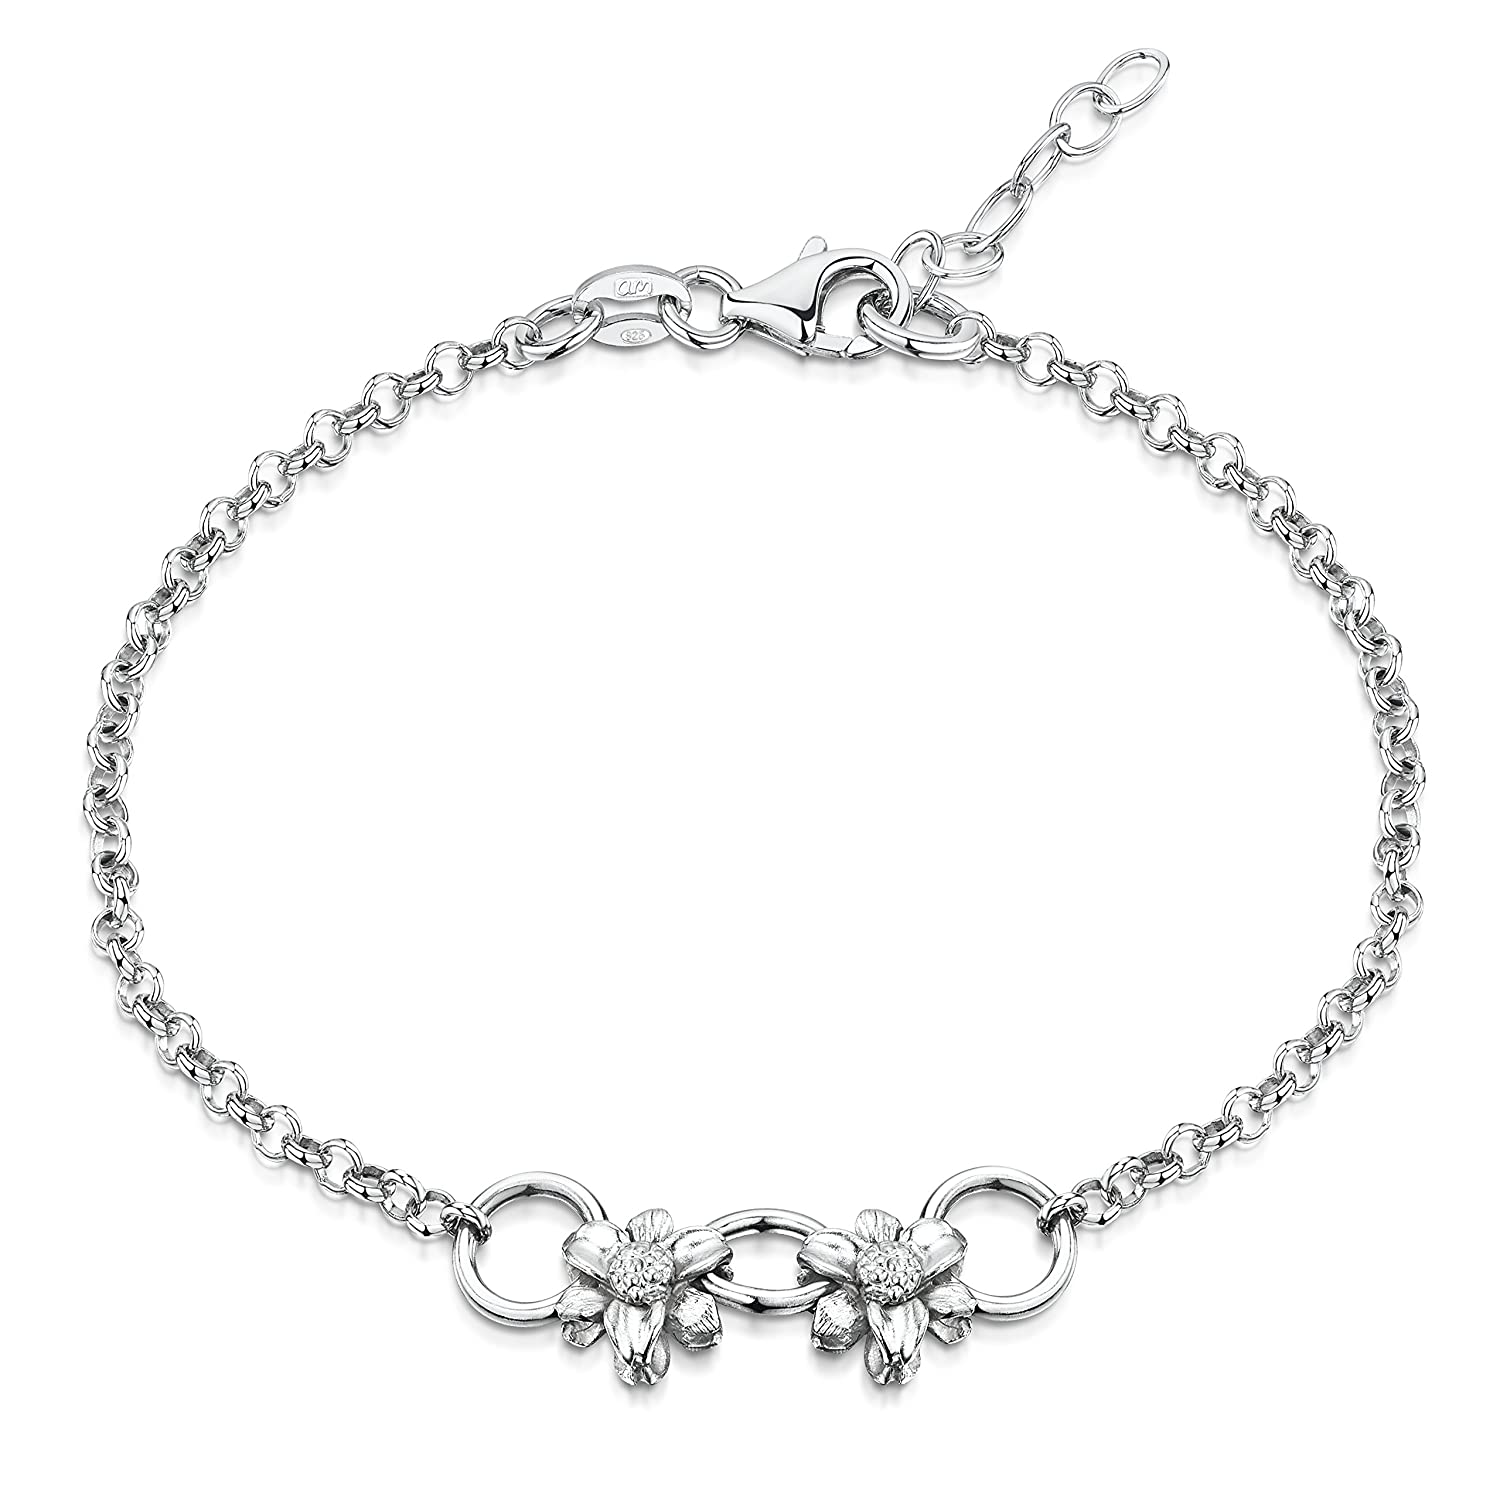 Amberta 925 Sterling Silver Adjustable Ankle Bracelet - Chain 9 to 10 inch - Flexible Fit TIE-S925-ANK-013